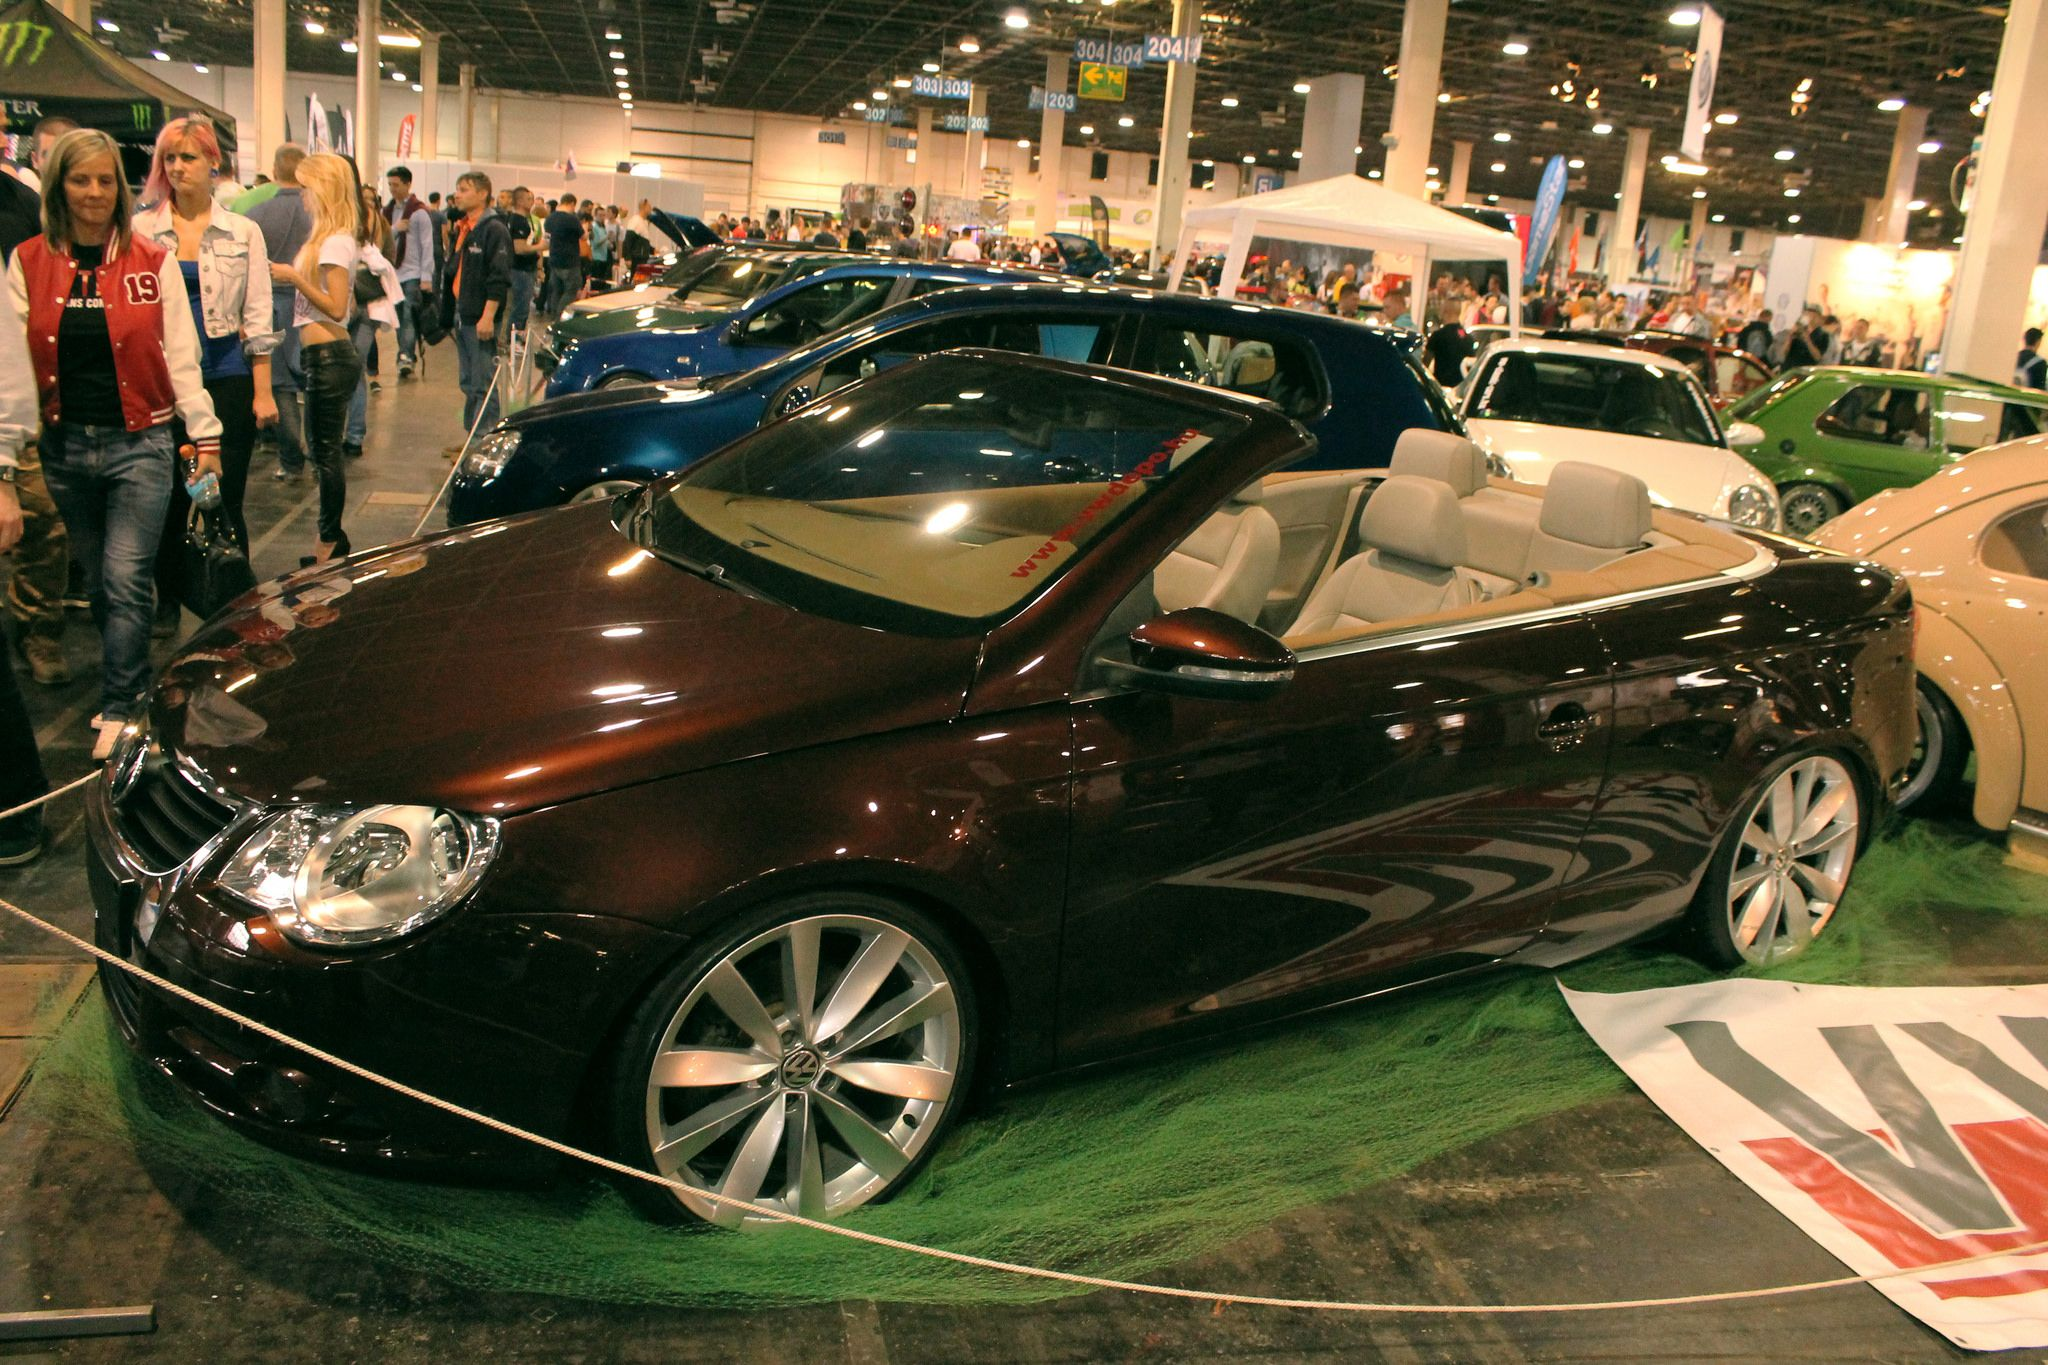 Volkswagen Eos Tuning Tuning MyKindaEos Pinterest Vw Eos - Eos car show